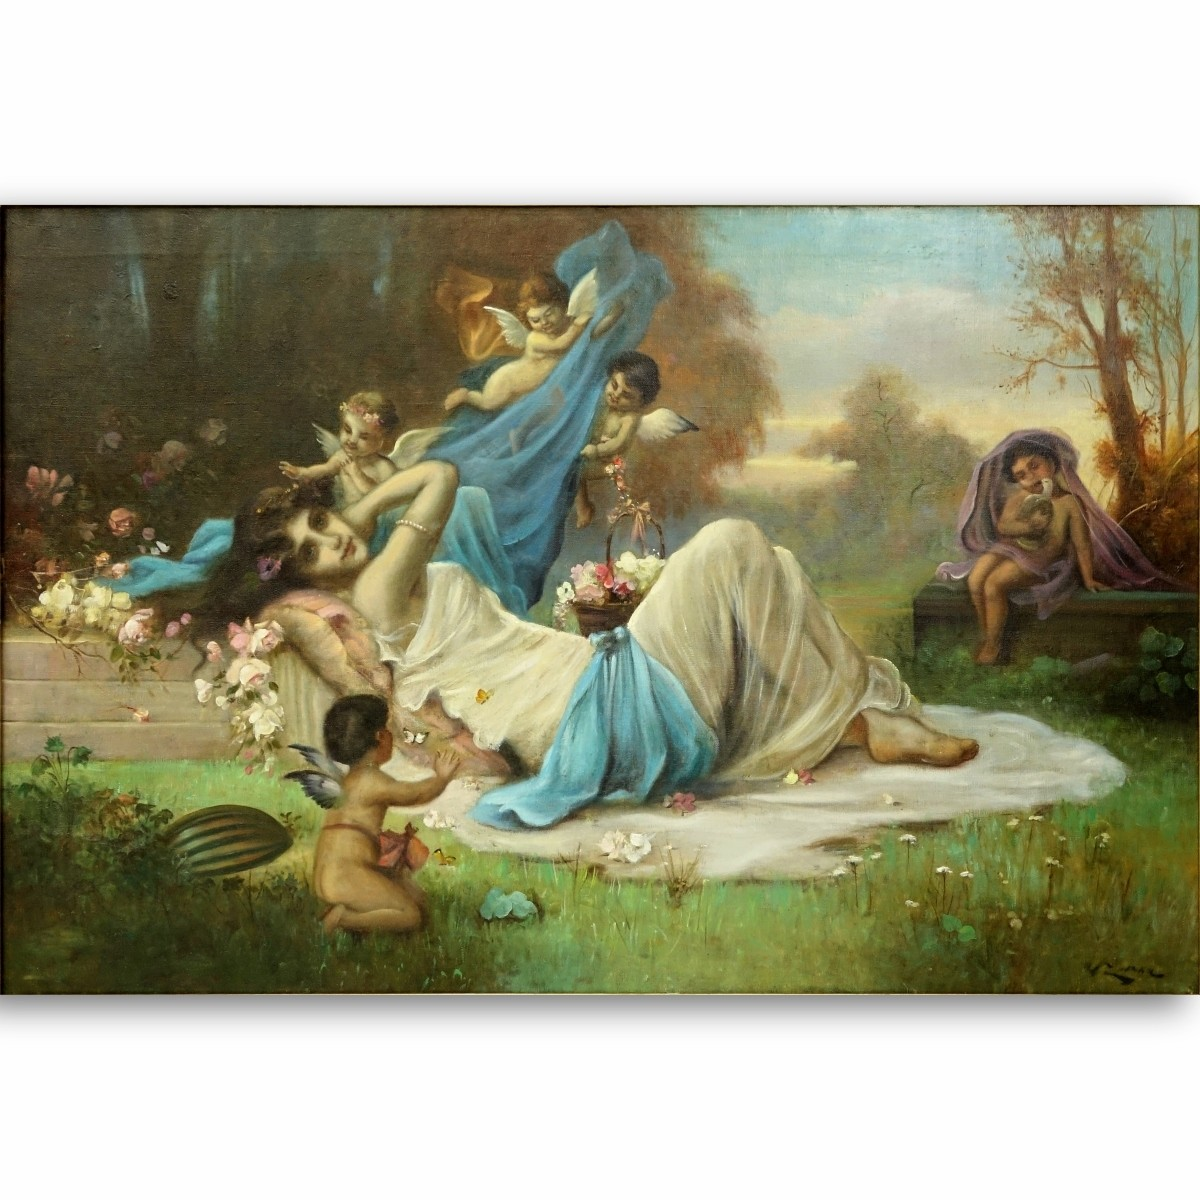 Hans Zatzka, Austrian (1859 - 1945) Oil/Canvas